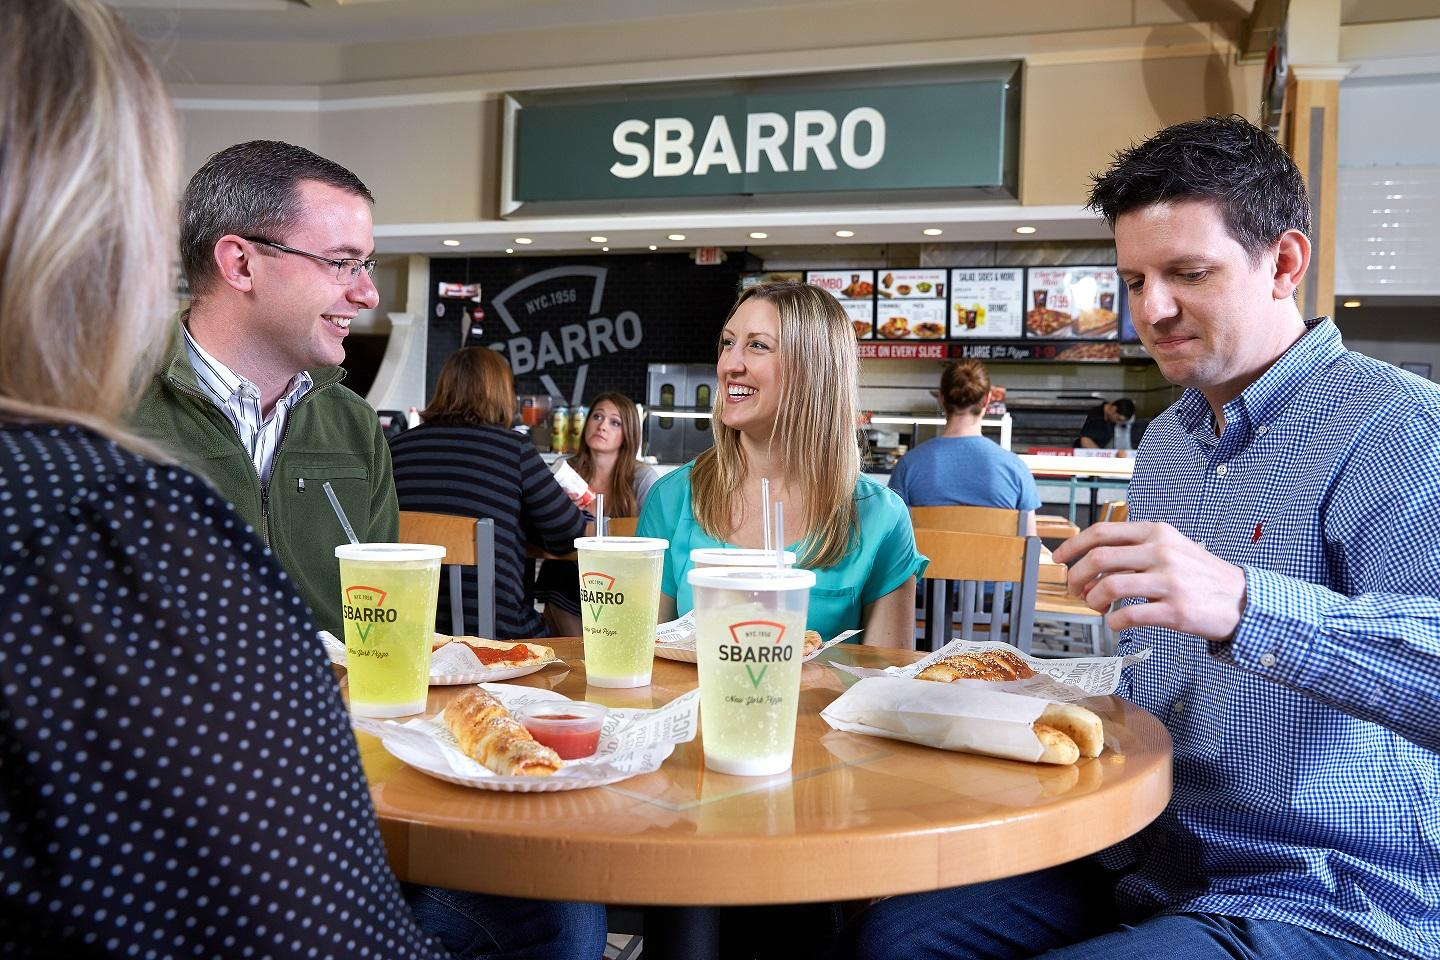 Grab your pals and a few slices at Sbarro.